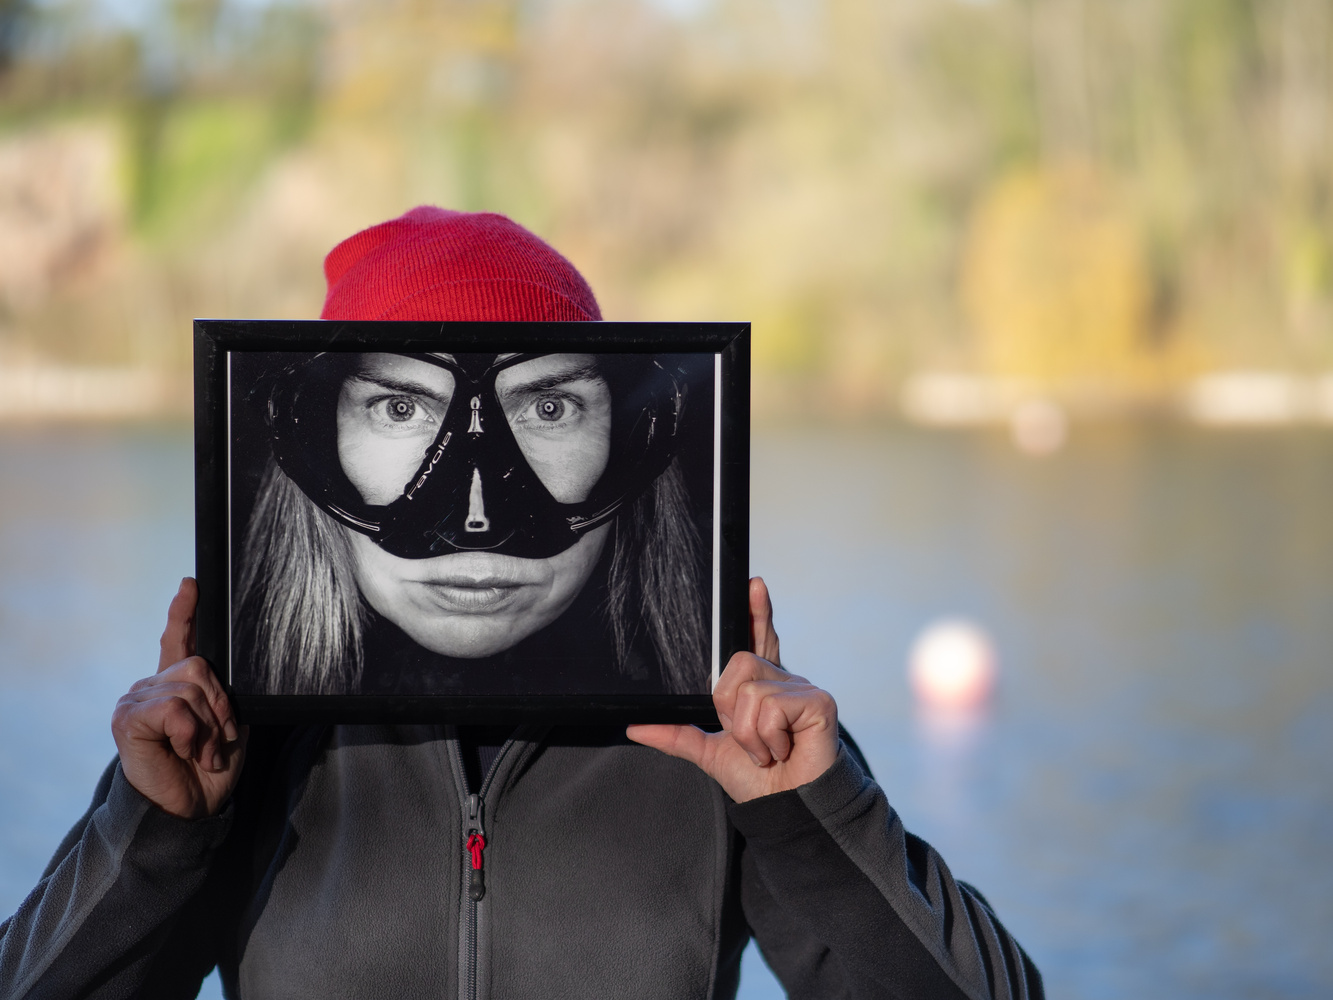 Faces of Divers - Magdalena Wąs by tomas doe